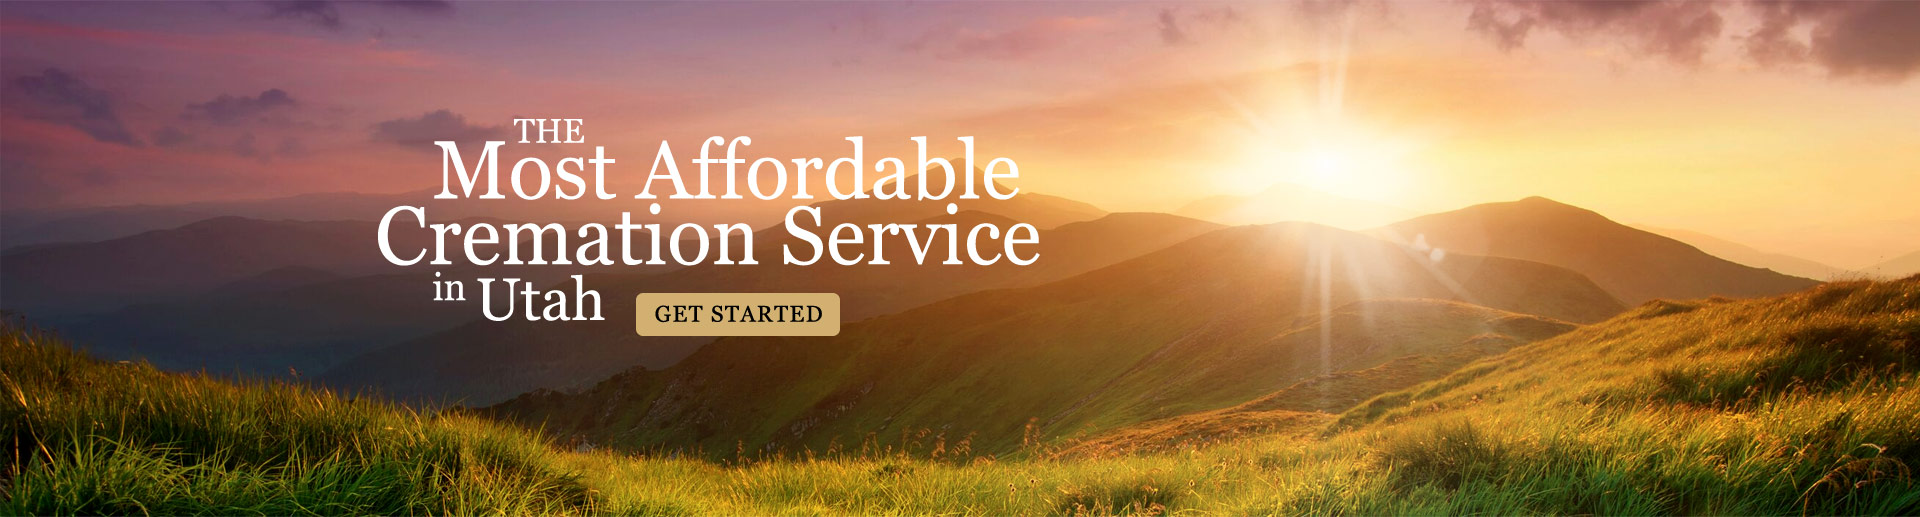 The most affordable cremation service in utah graphic